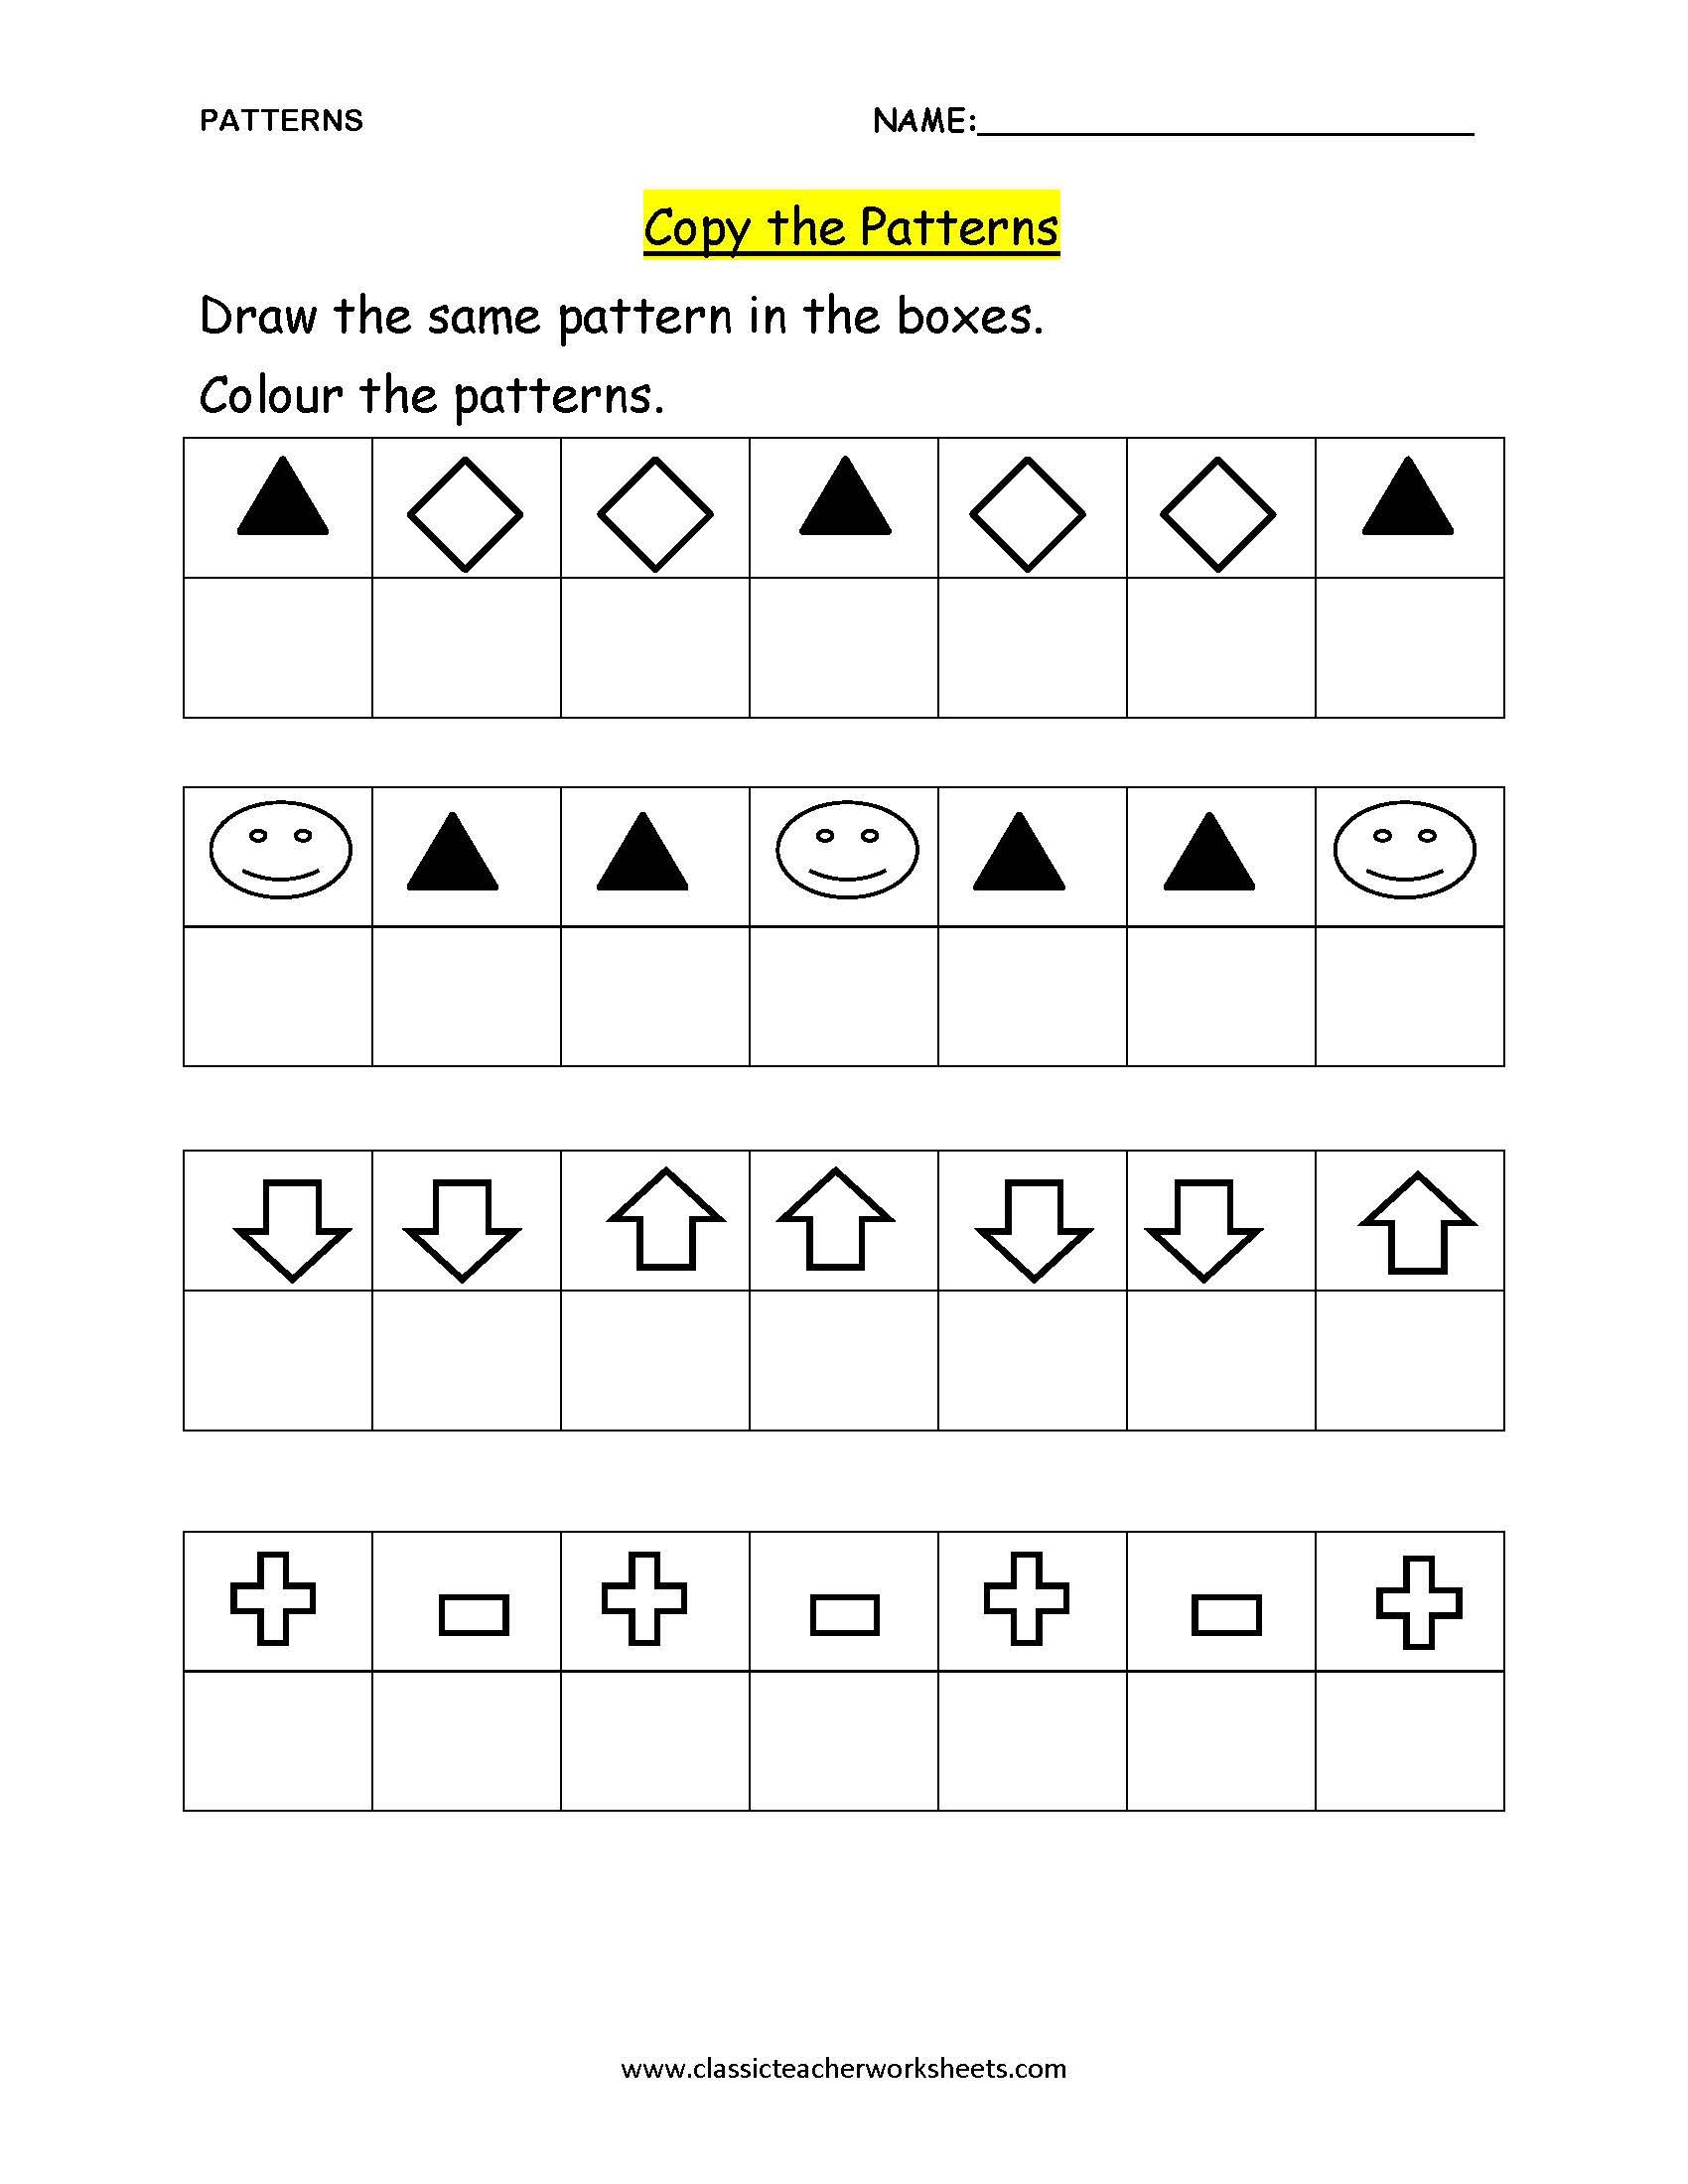 Check Out Our Collection Of Math Worksheets At Classicteacherworksheets Worksheet Patterns